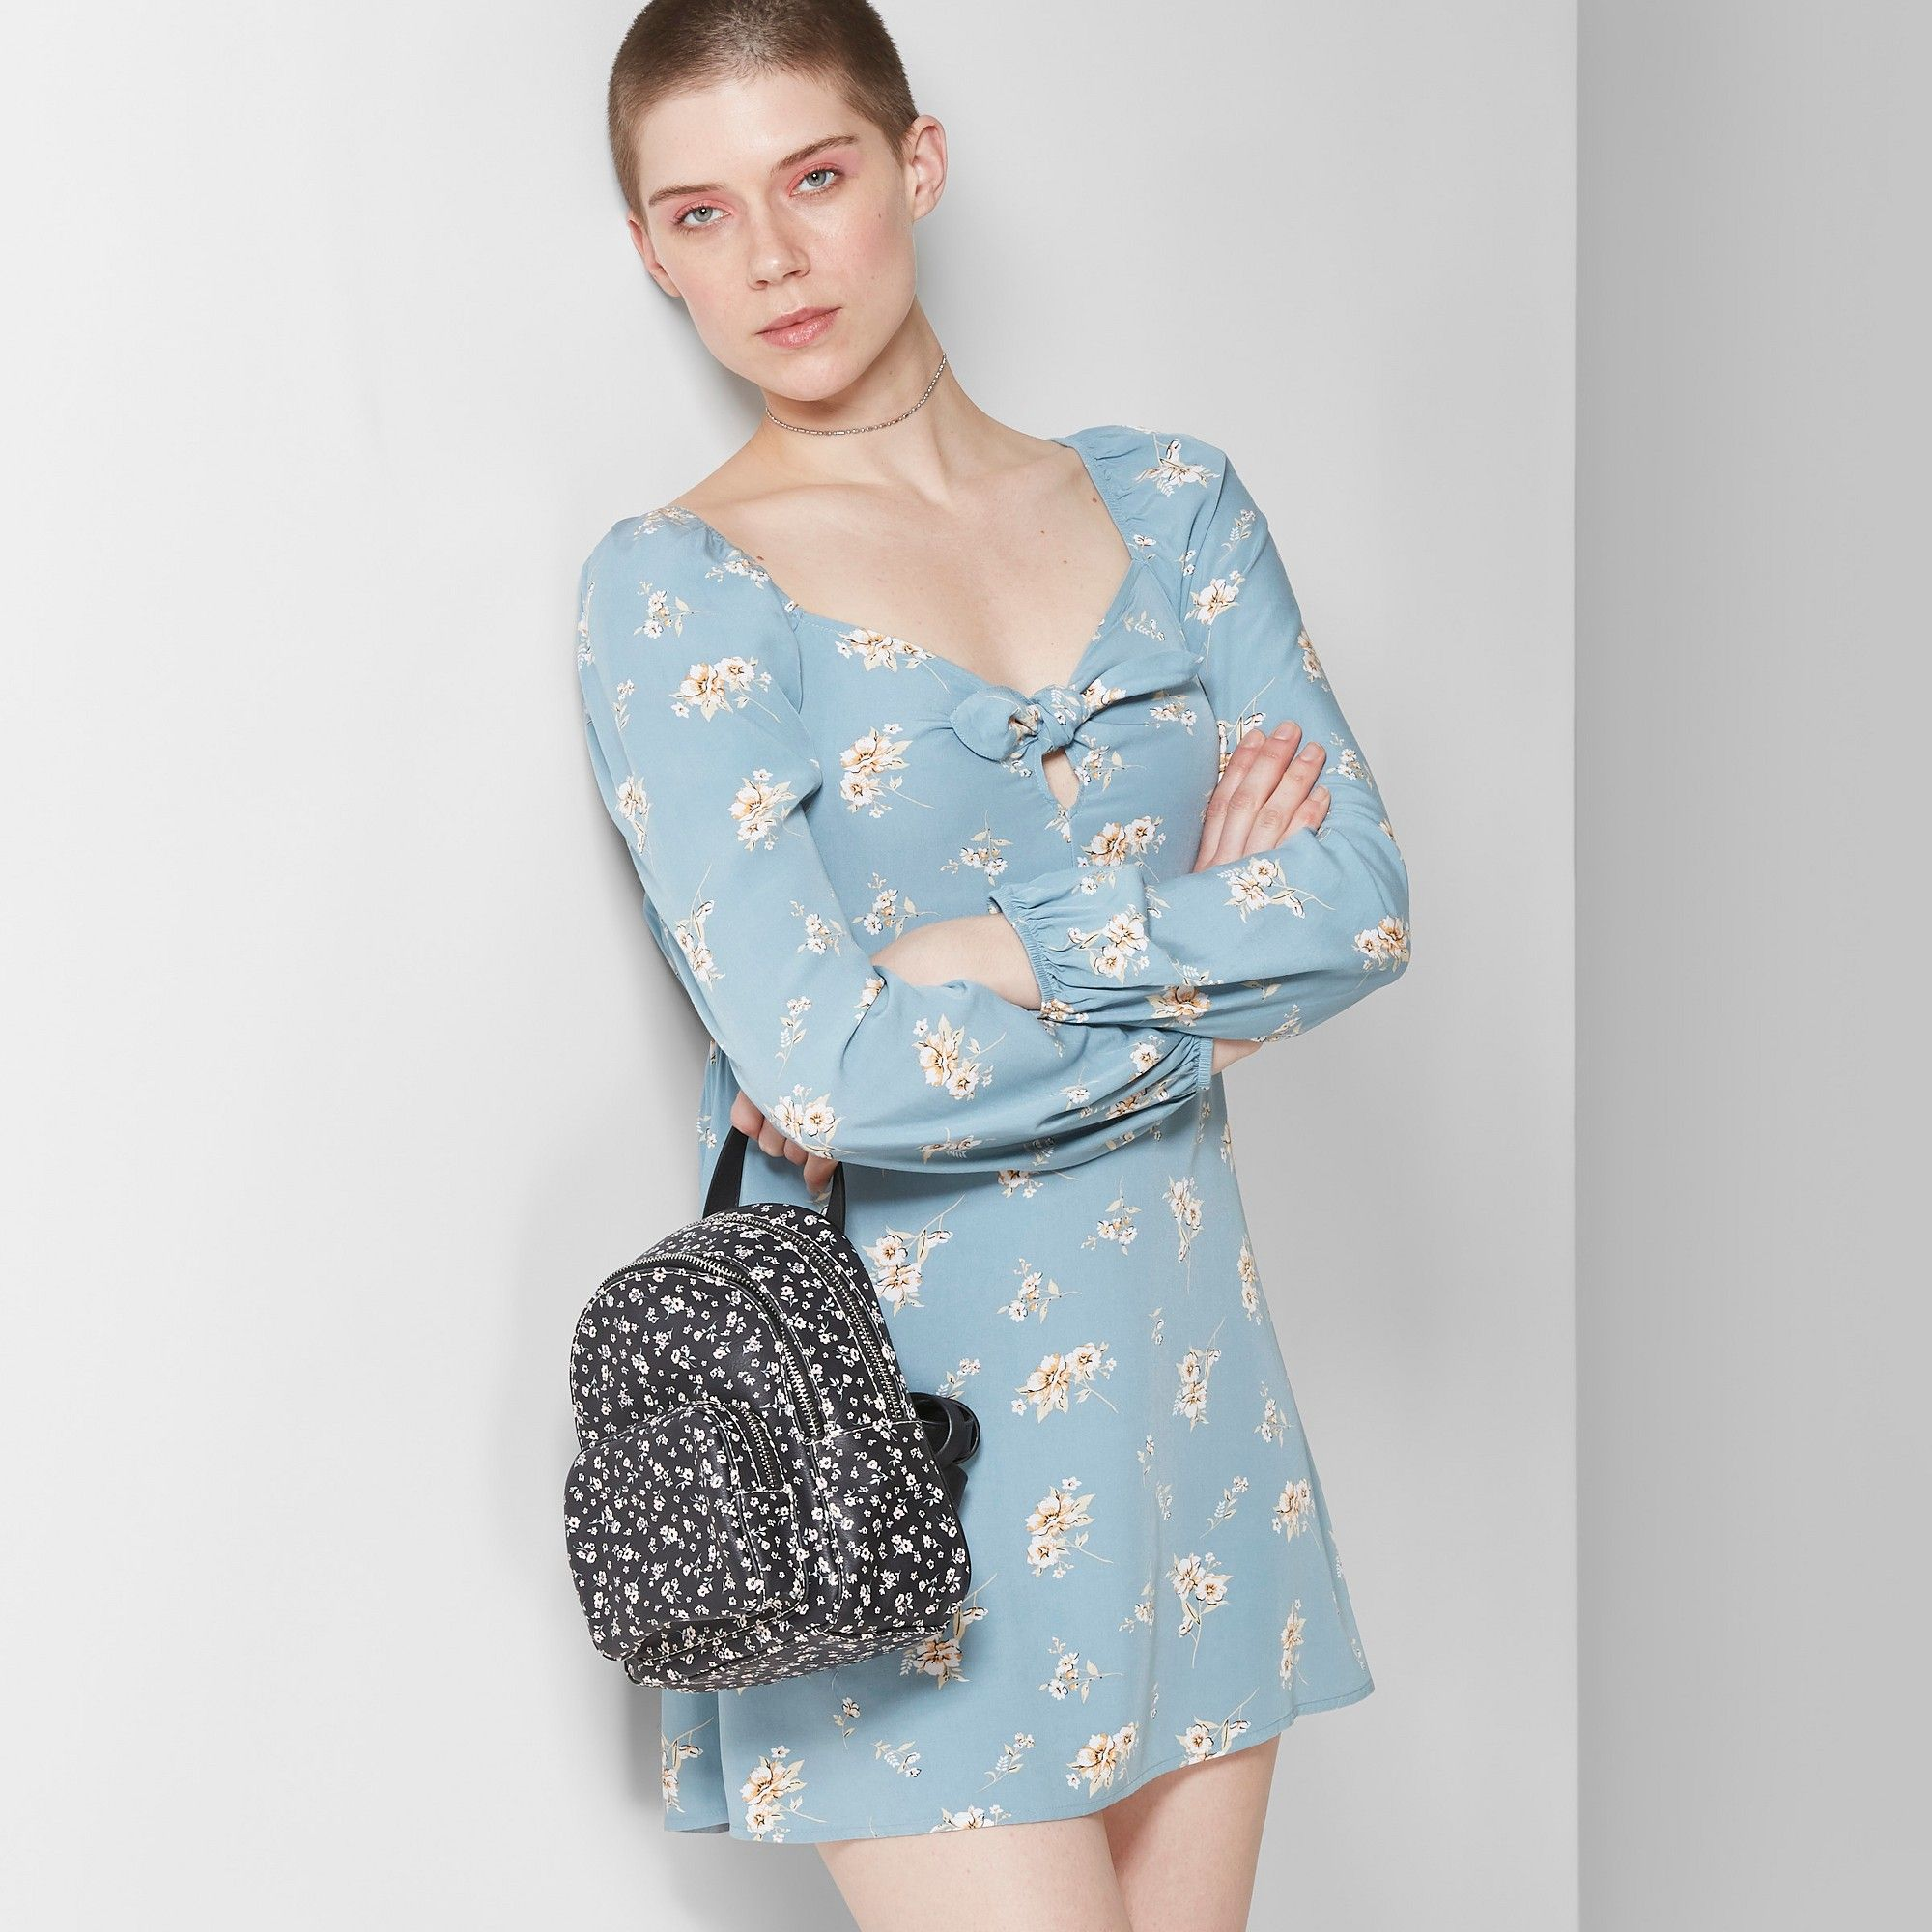 a657d039b Women's Floral Print Long Sleeve Bow Front Dress - Wild Fable Blue  Stencil/Ivory Xxl